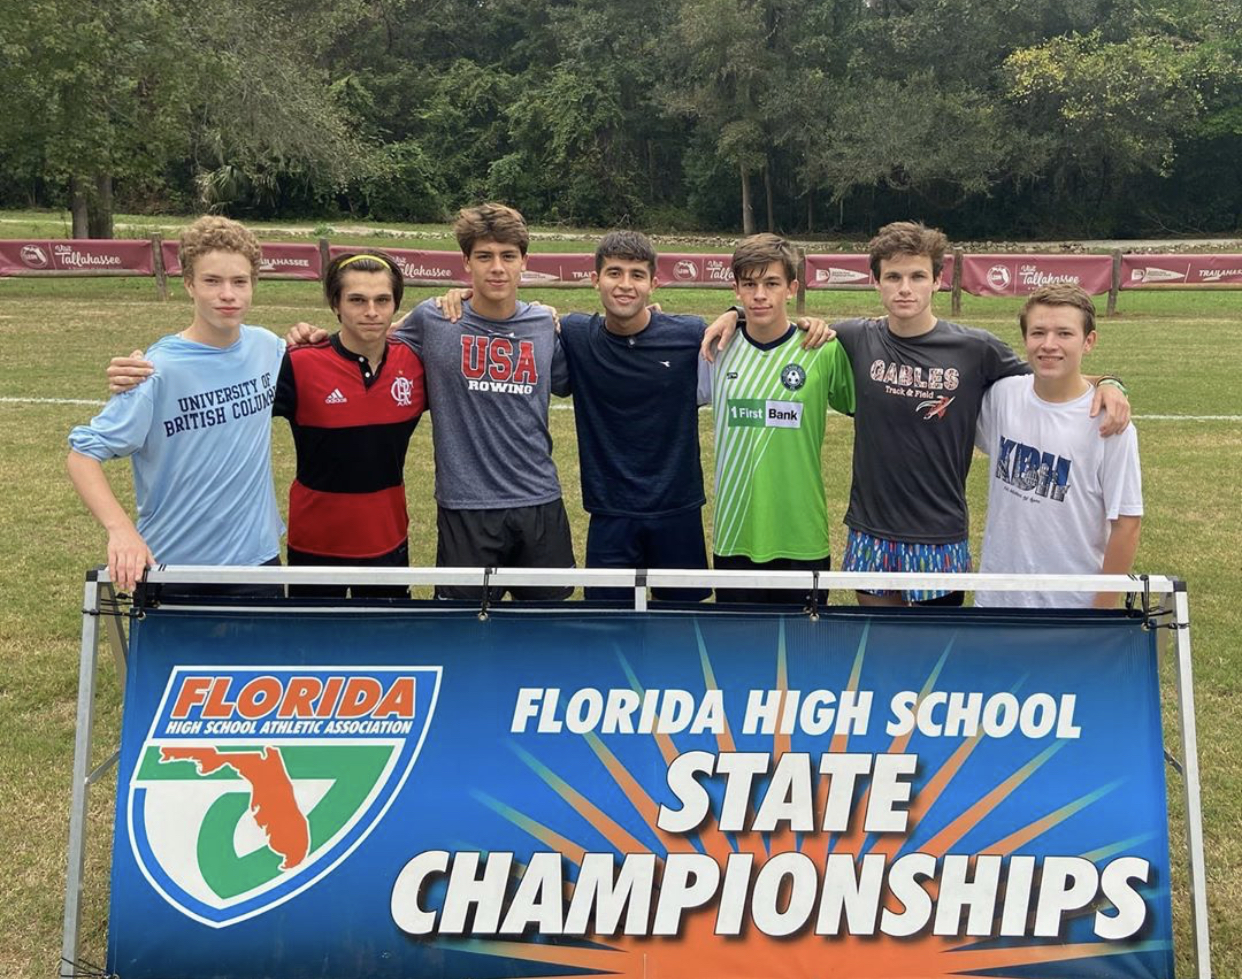 The runners at the cross-country State Championships, ready to run their personal bests.